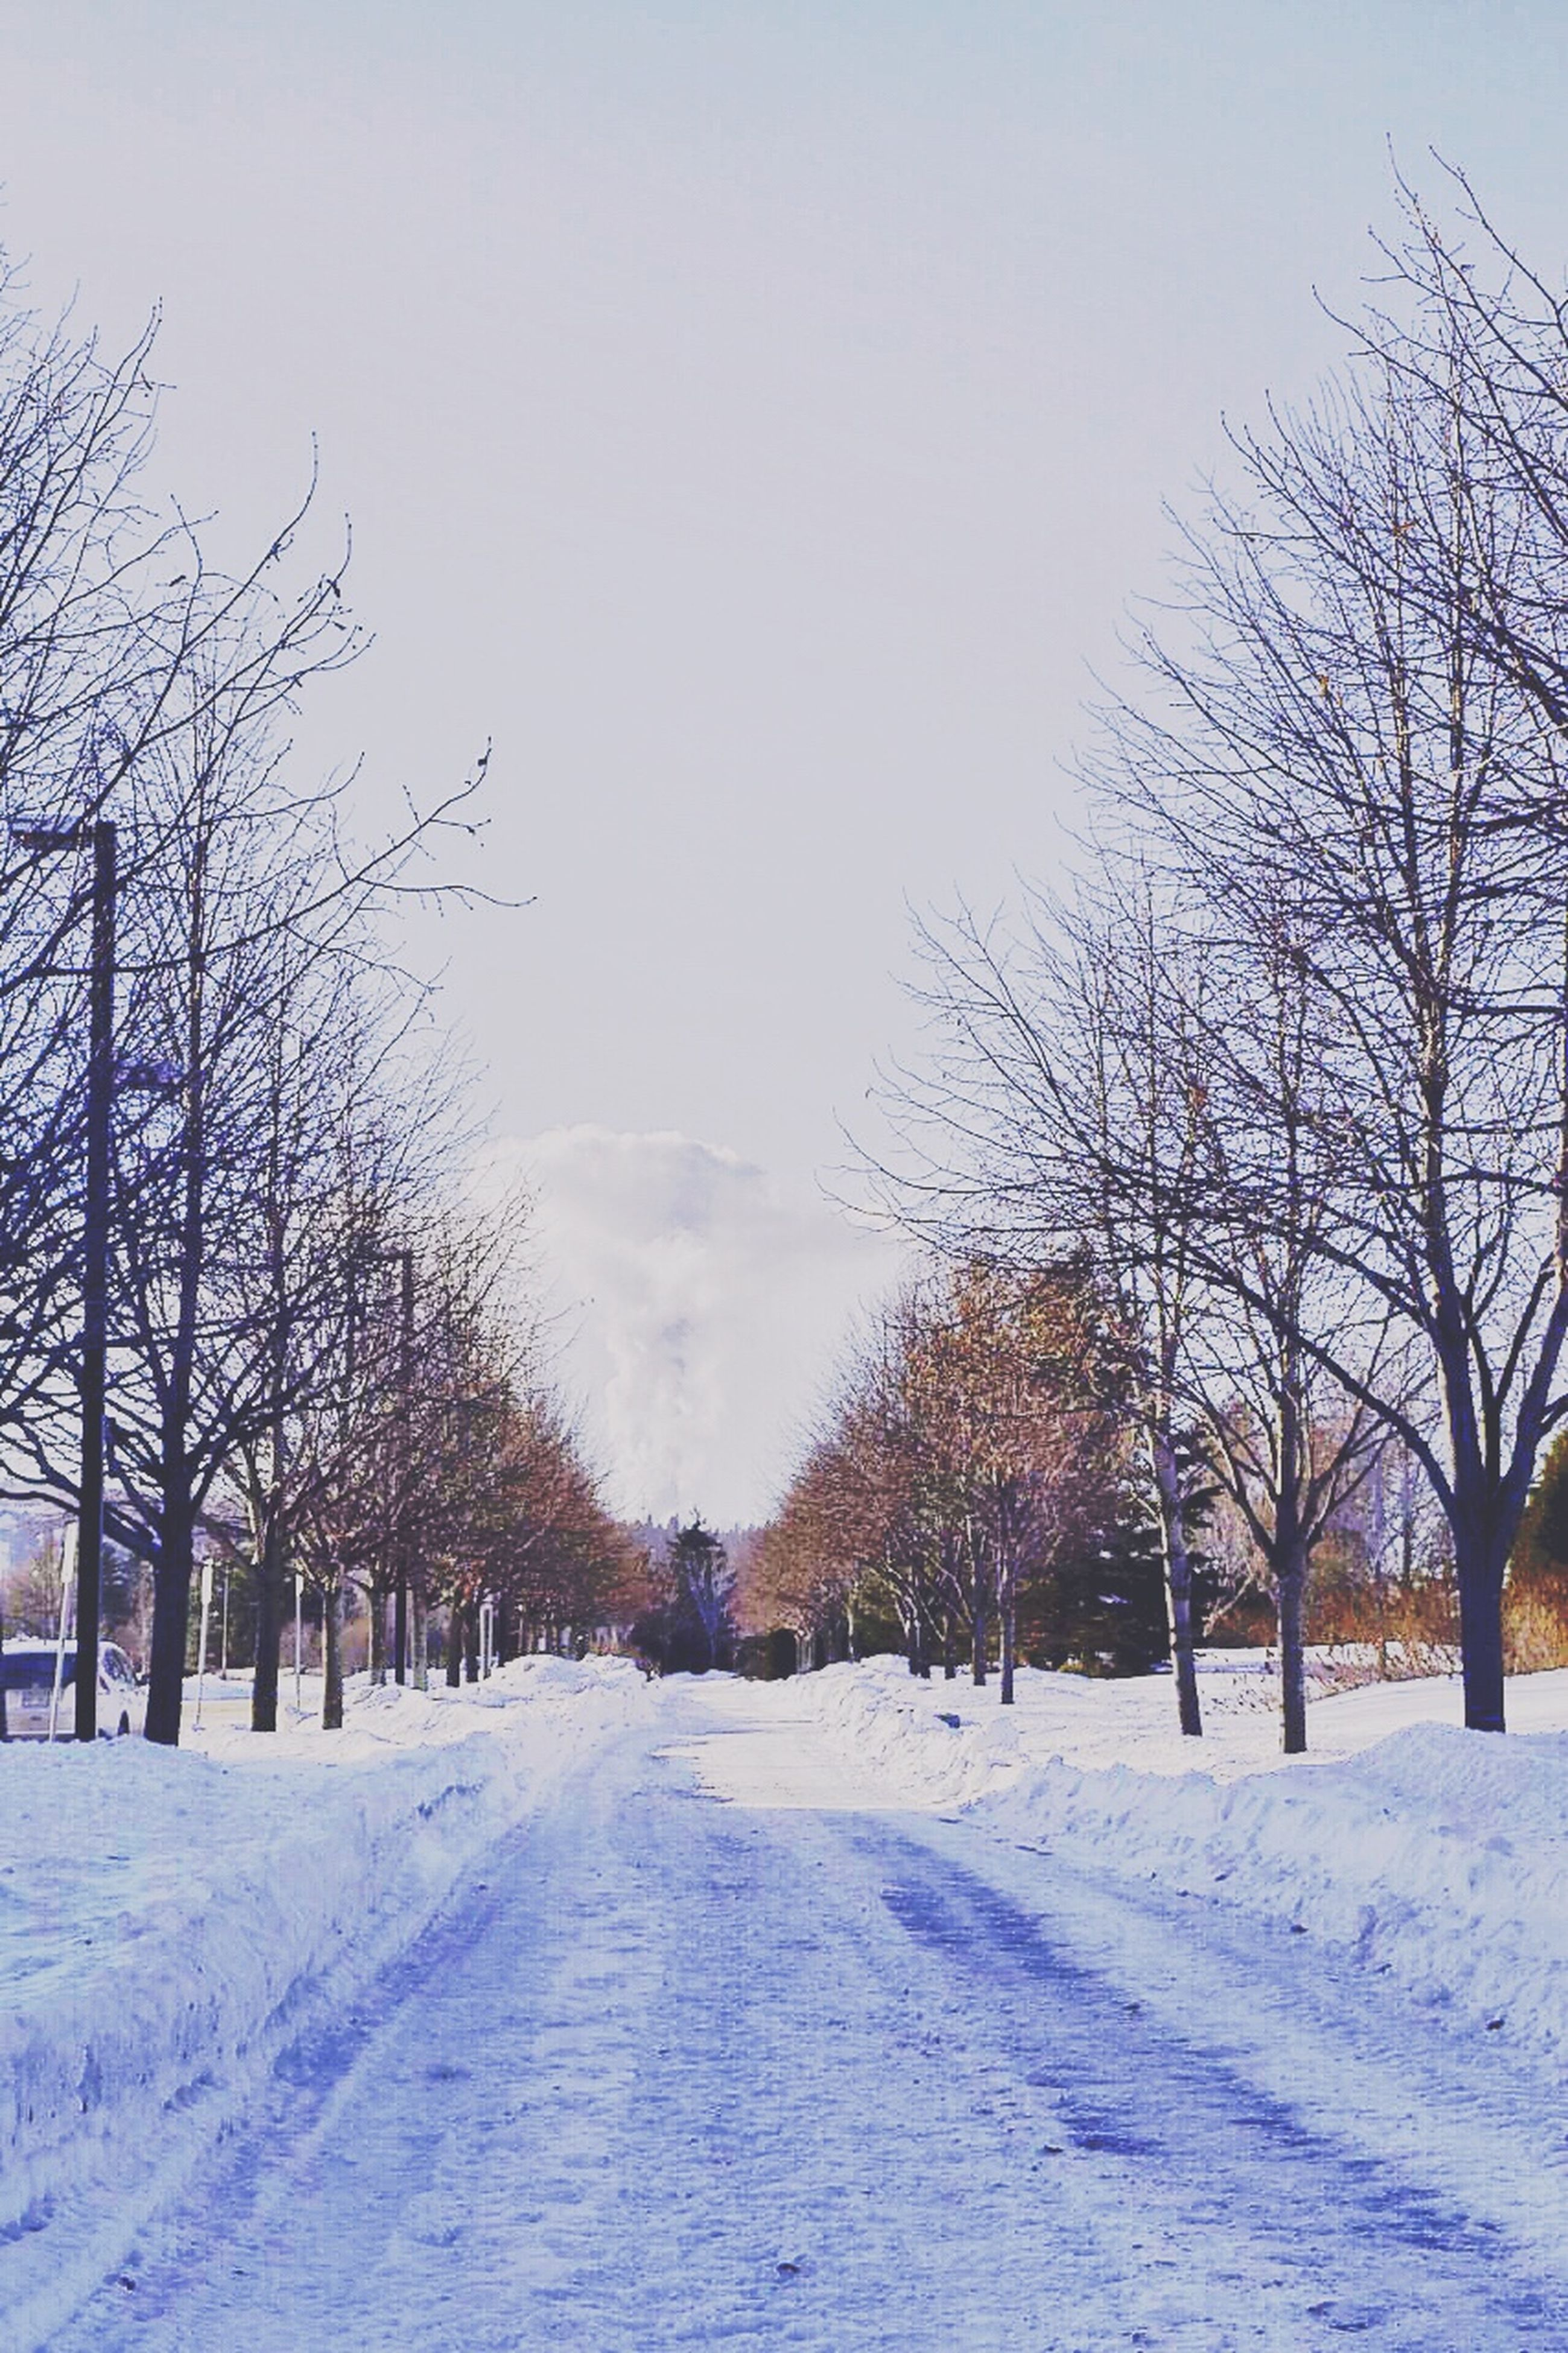 snow, winter, cold temperature, season, weather, tree, bare tree, covering, the way forward, white color, nature, diminishing perspective, covered, tranquil scene, tranquility, frozen, landscape, clear sky, snow covered, road